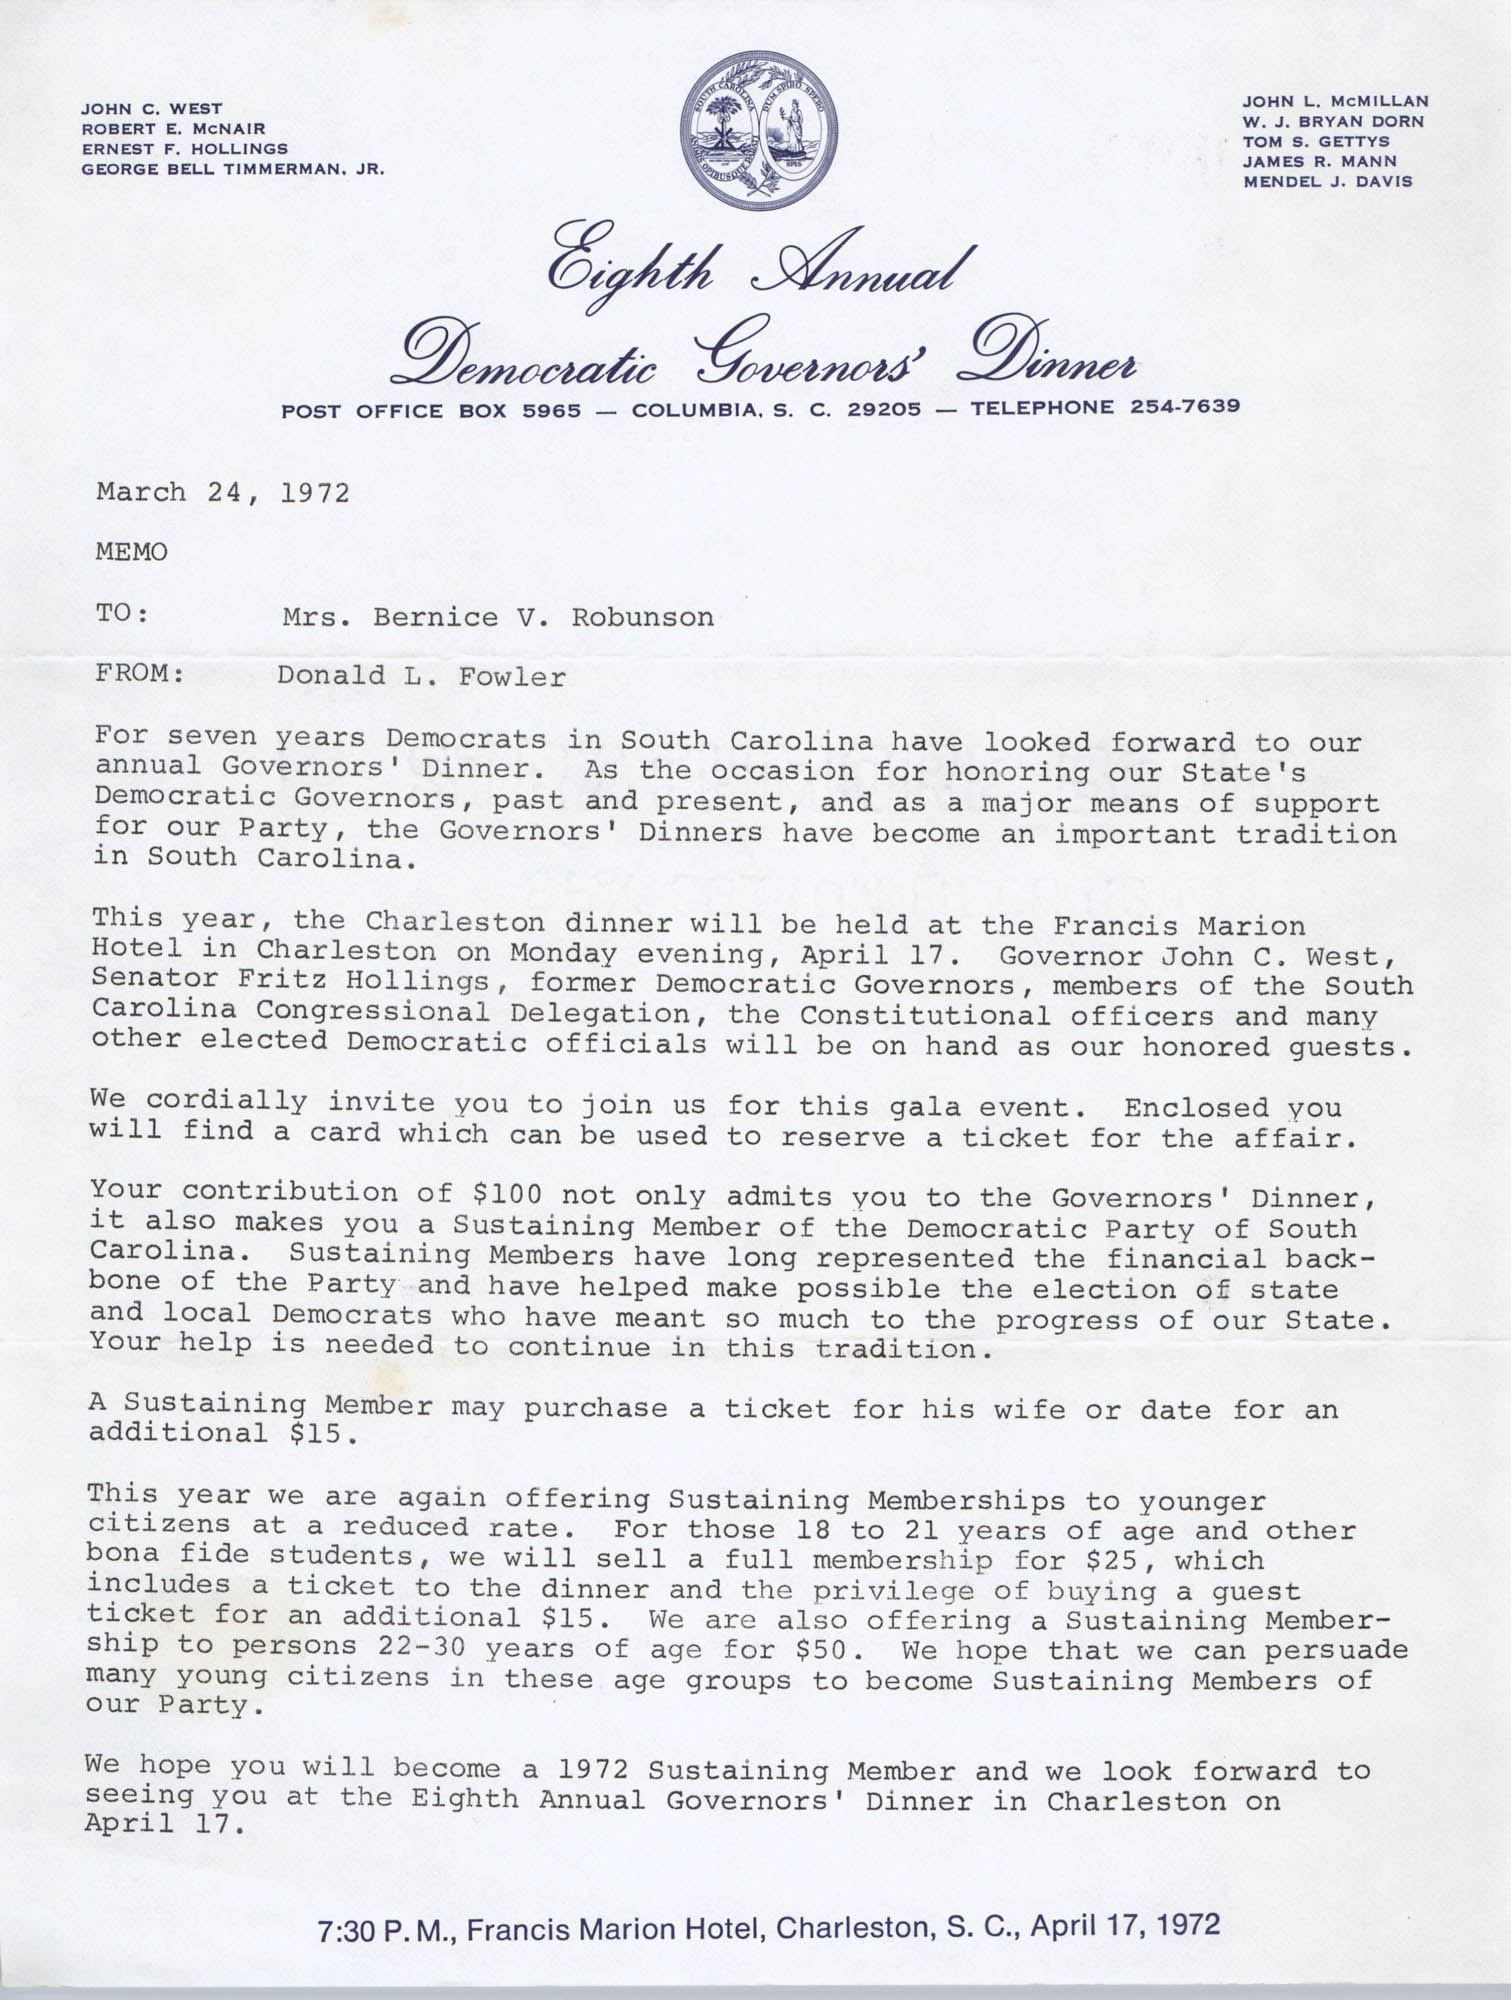 Memorandum from Donald L. Fowler to Bernice Robinson, March 24, 1972